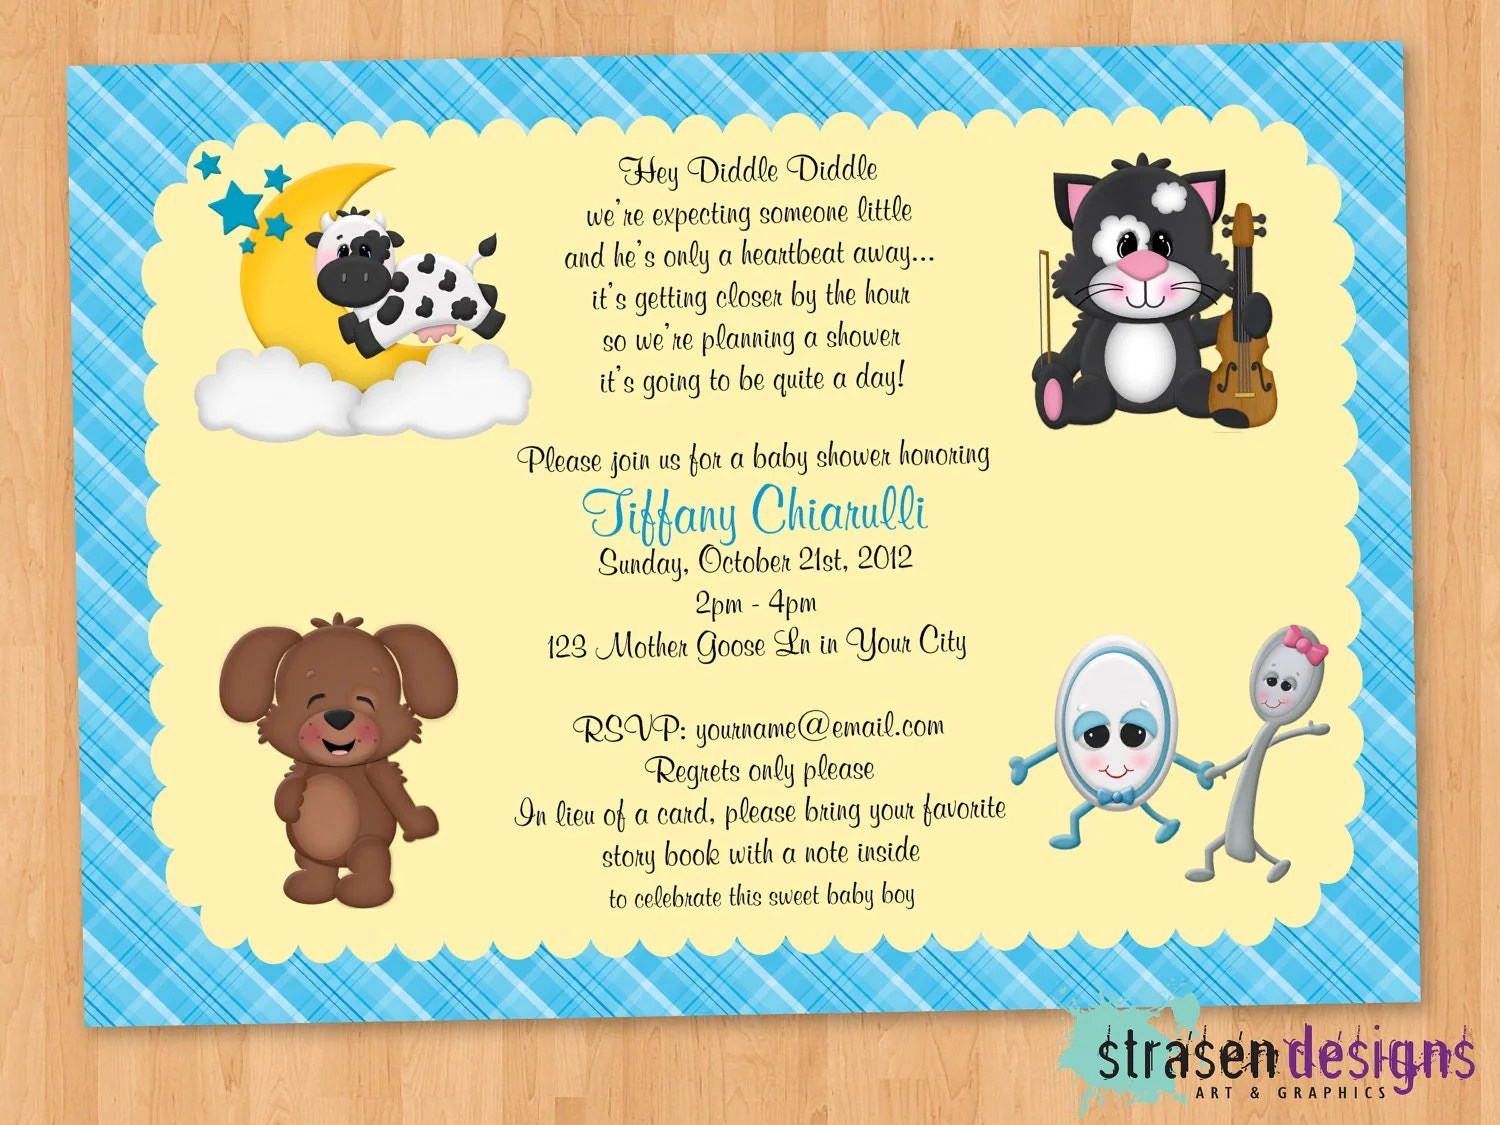 Order Invitation Prints